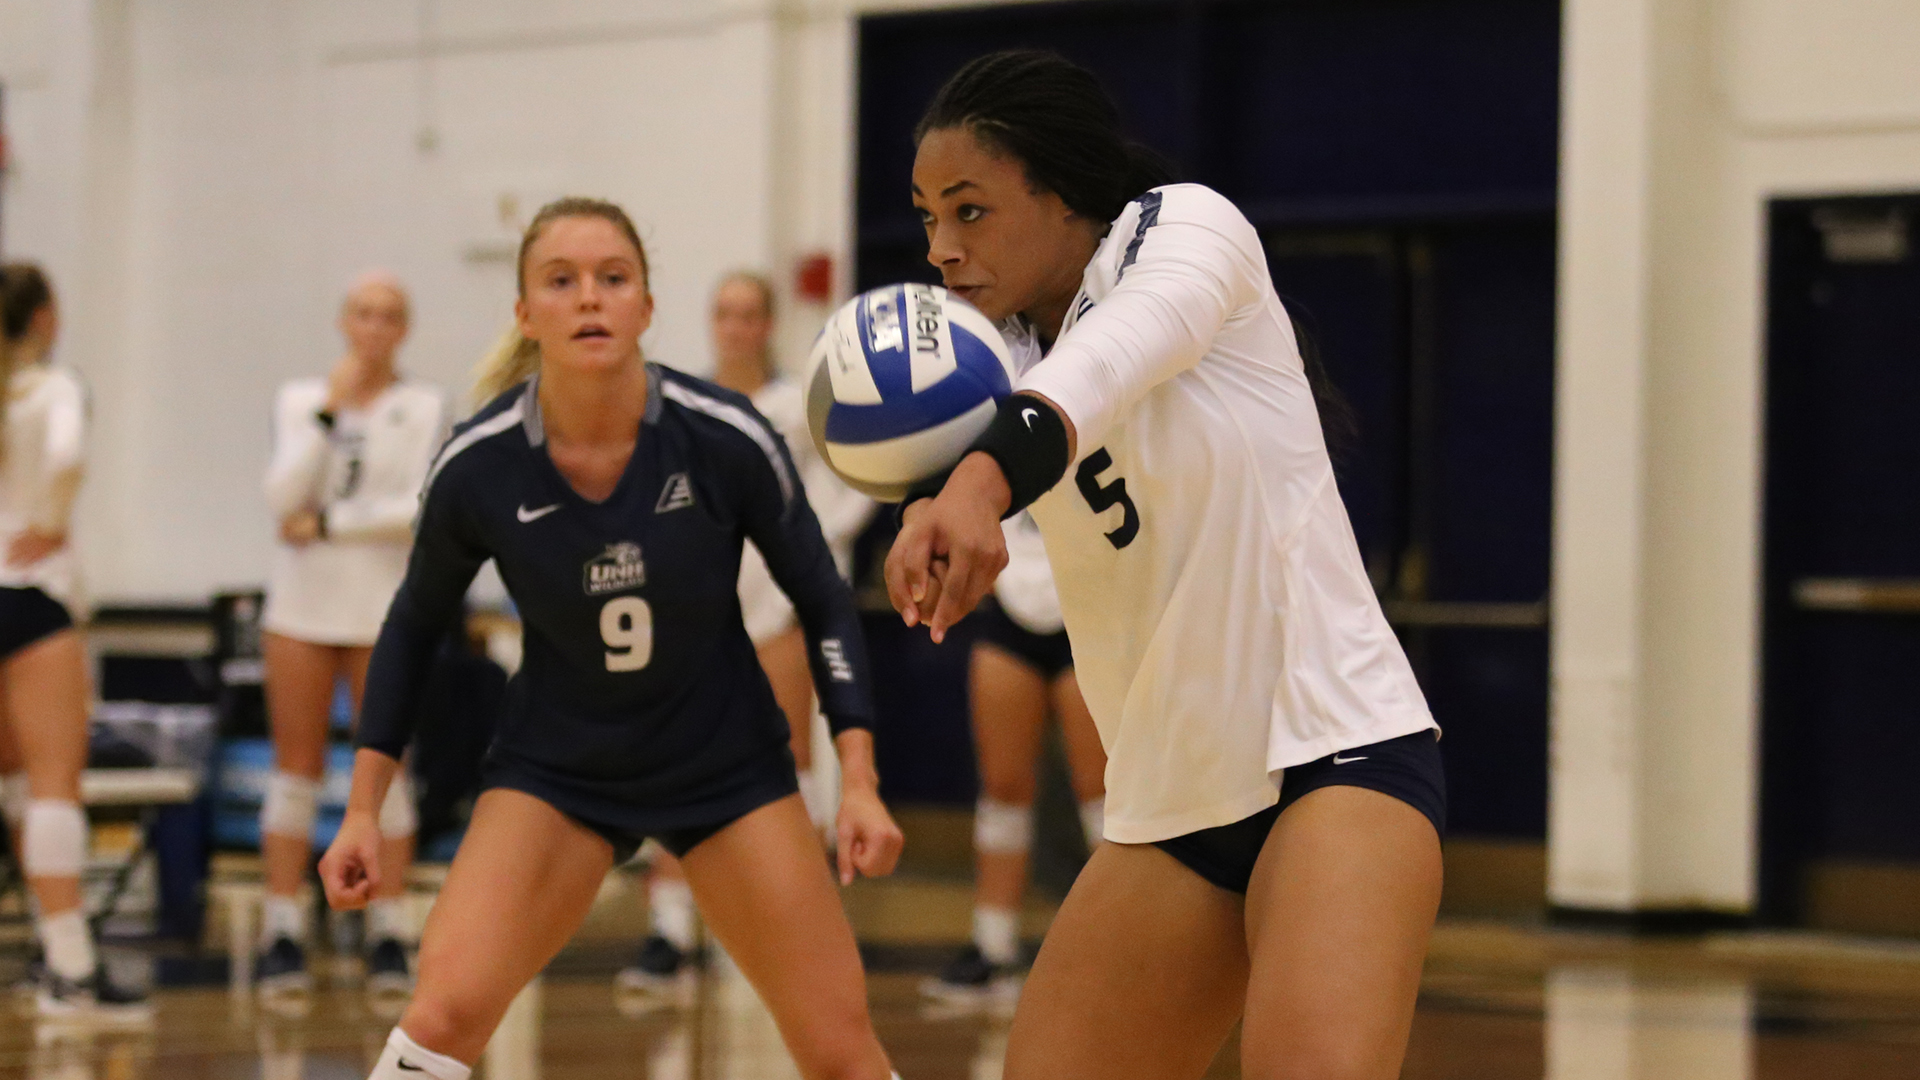 Kennedi Smith 2019 Volleyball University Of New Hampshire Athletics